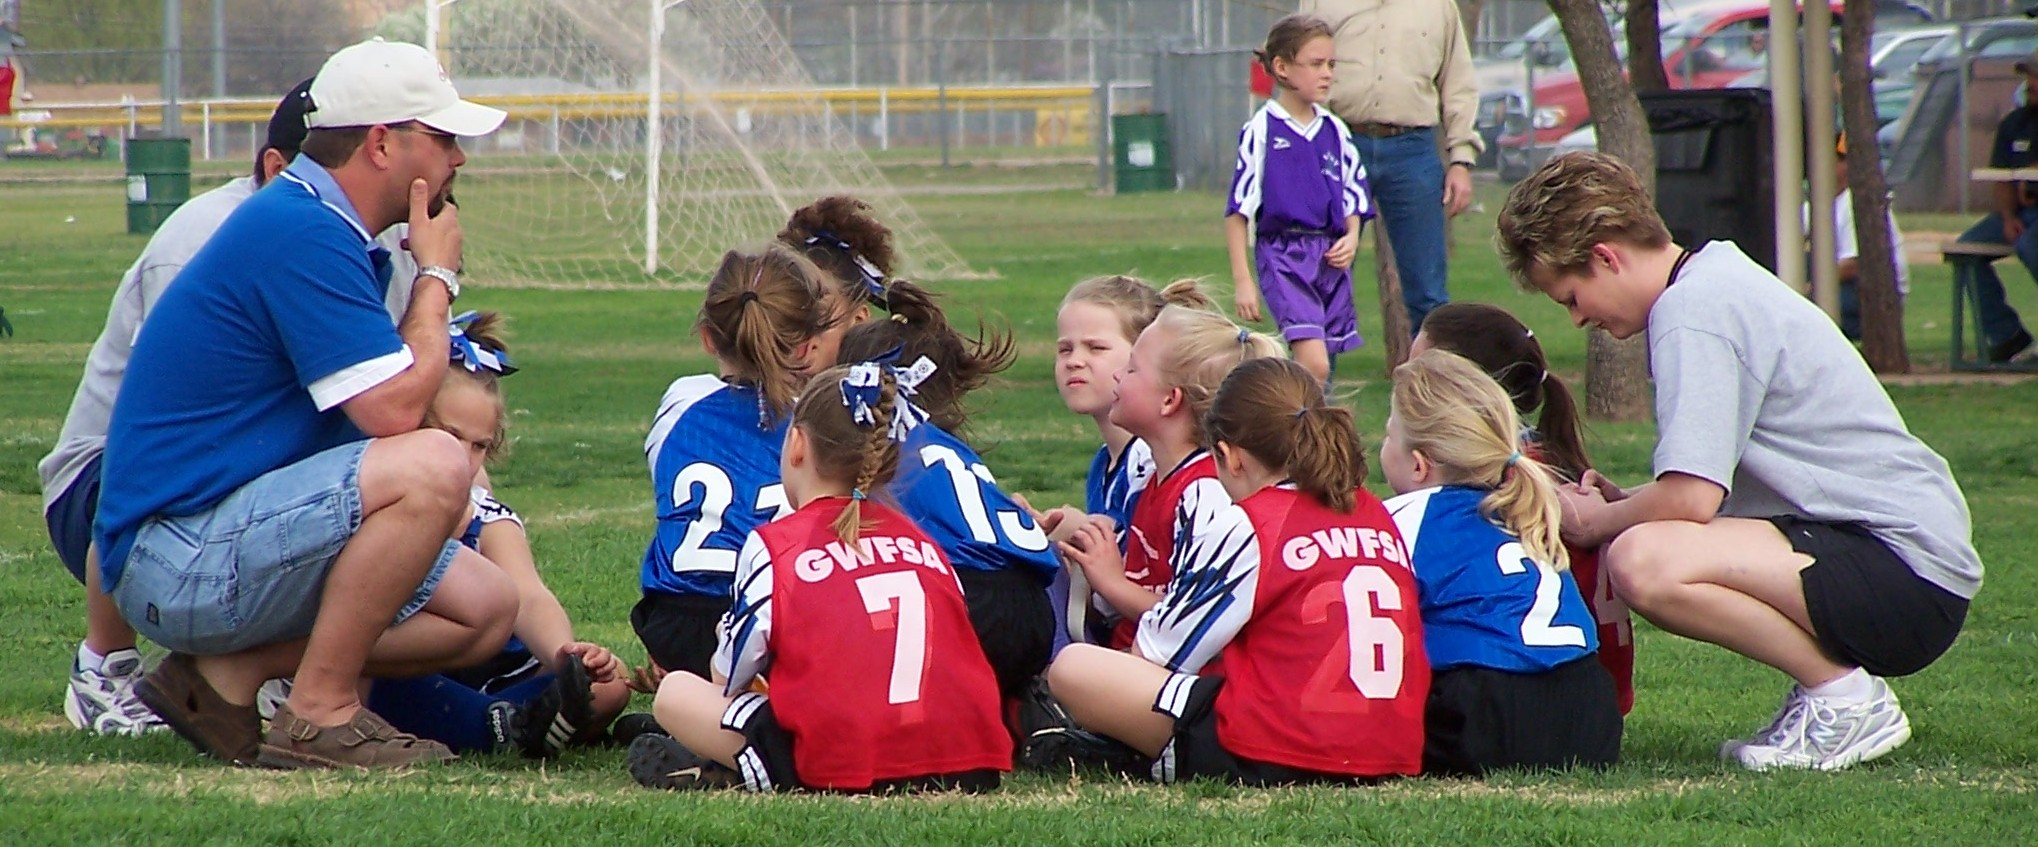 how to coach a soccer team What can you expect from soccer coaching jobs with uk elite soccer we offer the opportunity to coach children, in a sport you love, with a global company committed to excellence - in america.